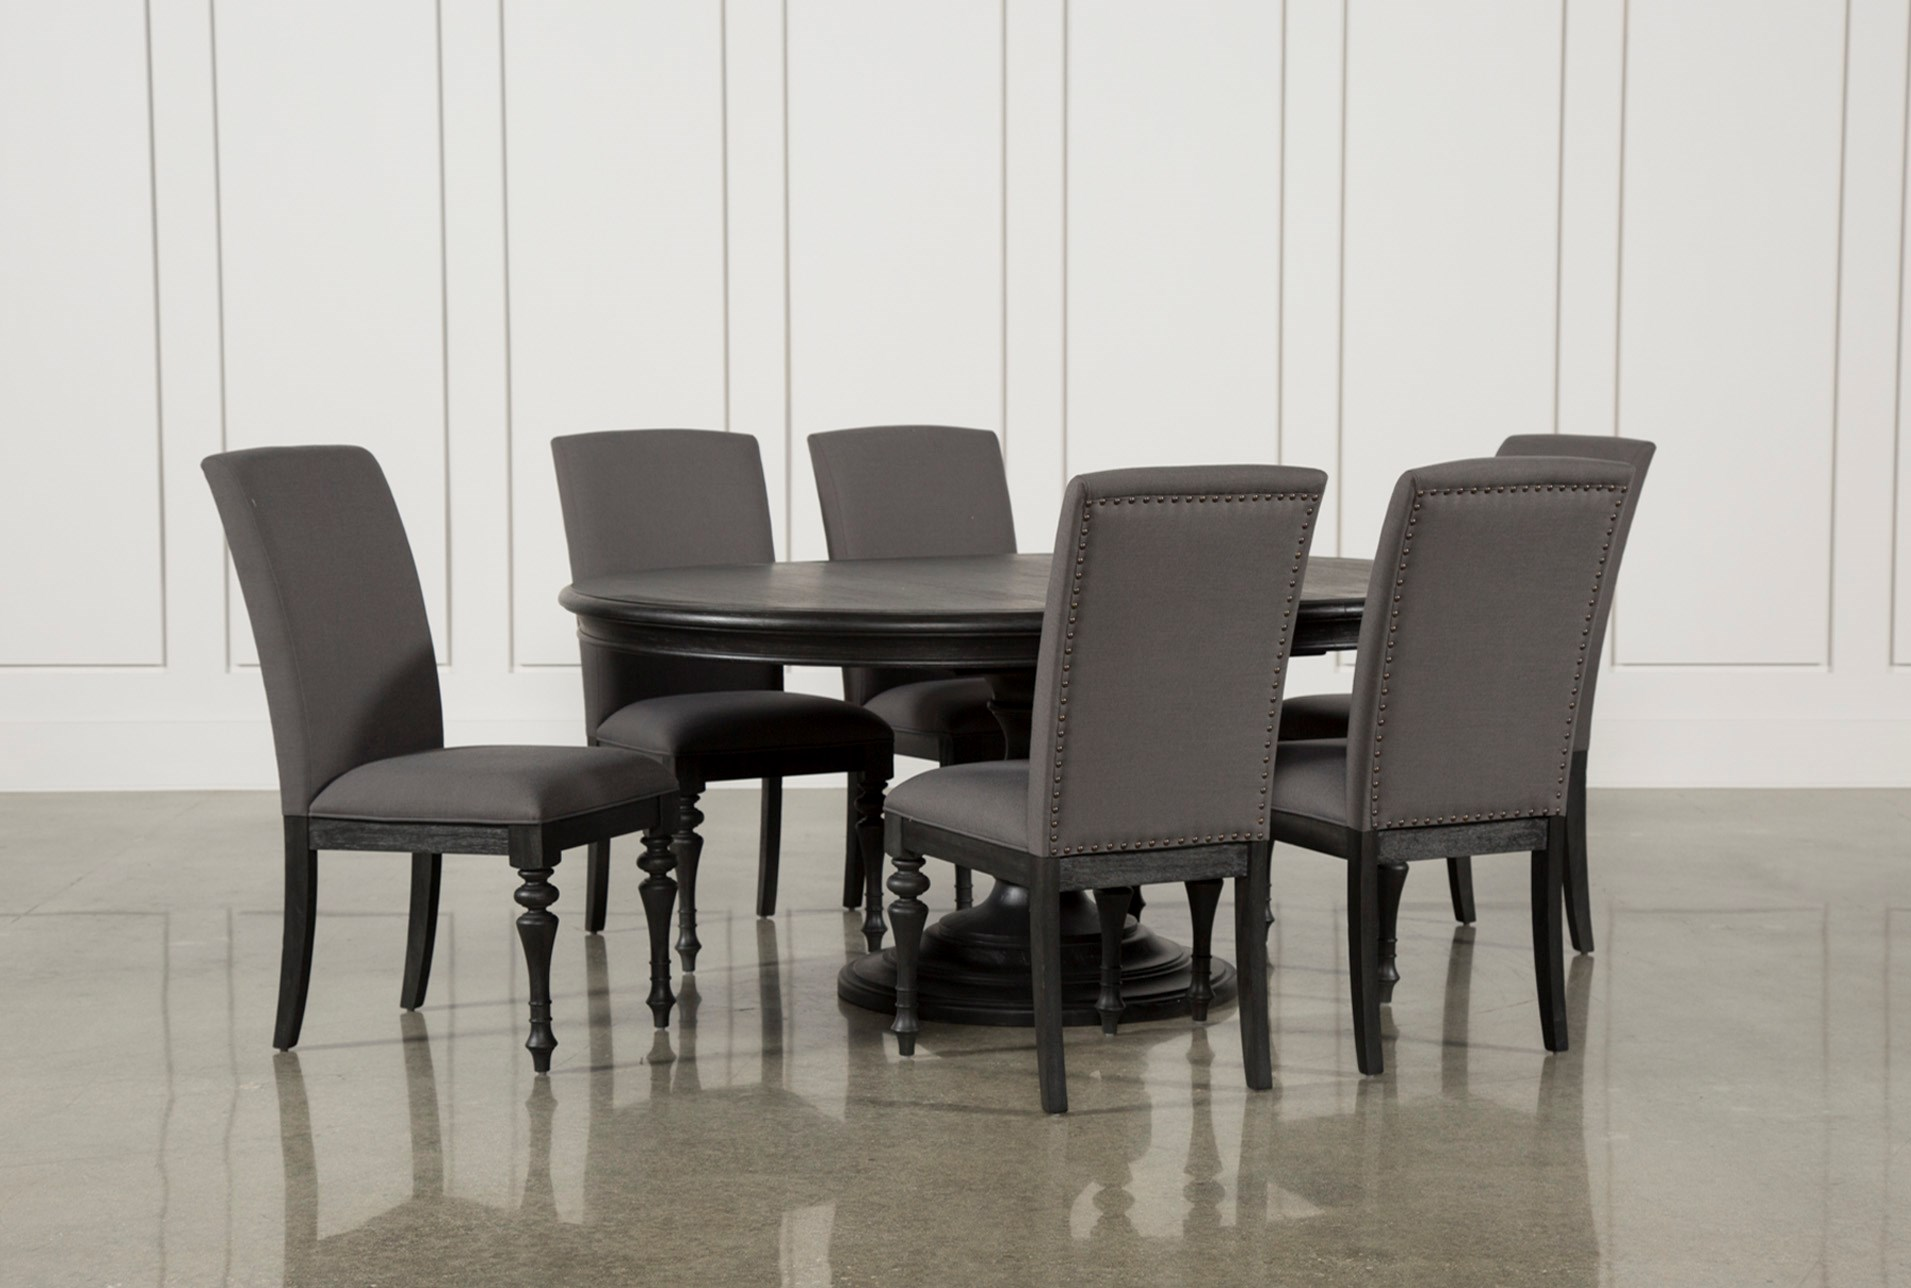 Caira black 7 piece dining set w upholstered side chairs qty 1 has been successfully added to your cart